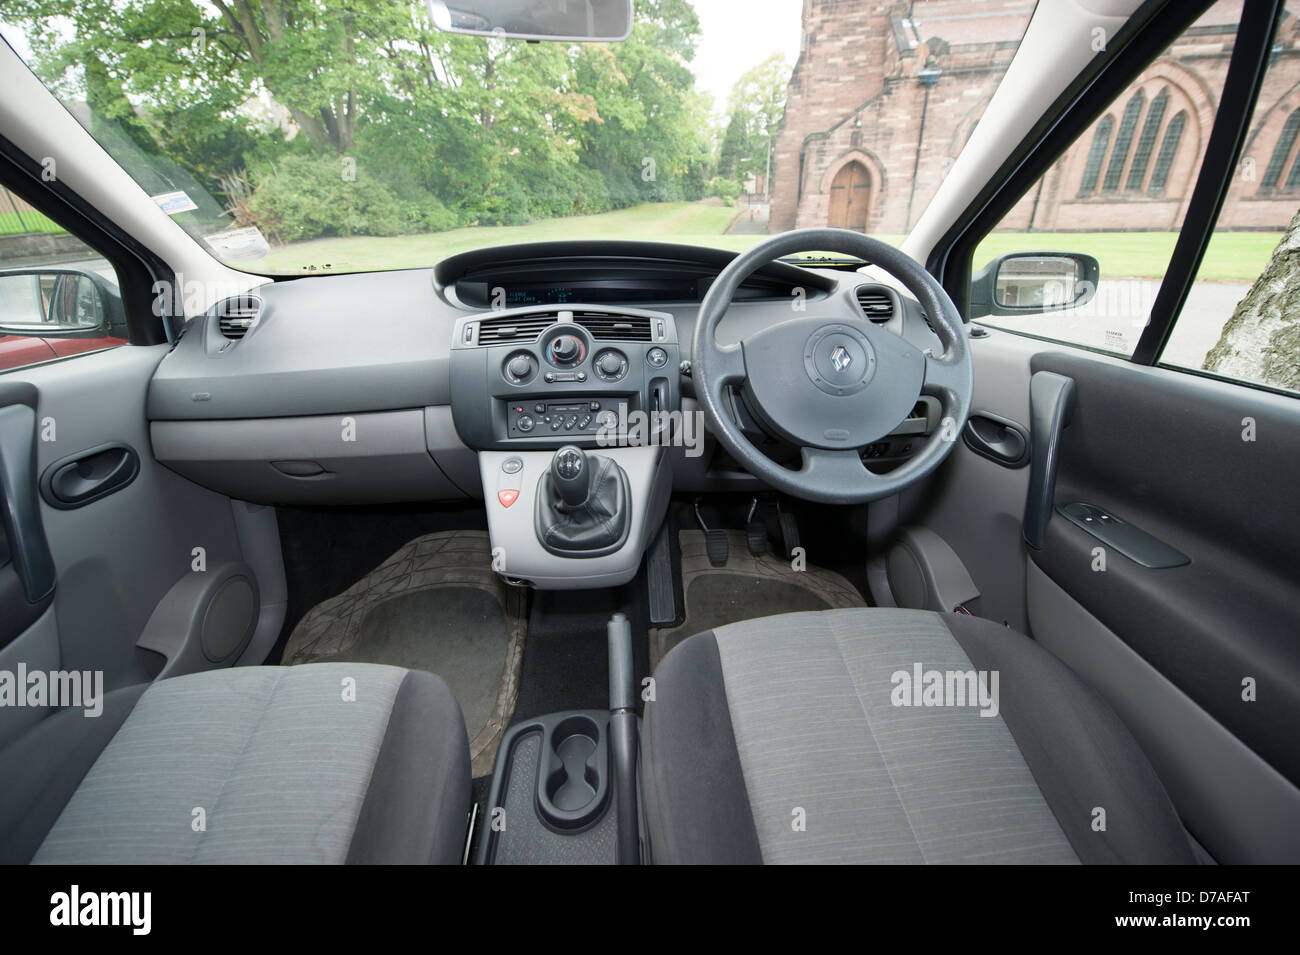 Inside Interior of Renault Scenic Car Stock Photo: 56165280 - Alamy